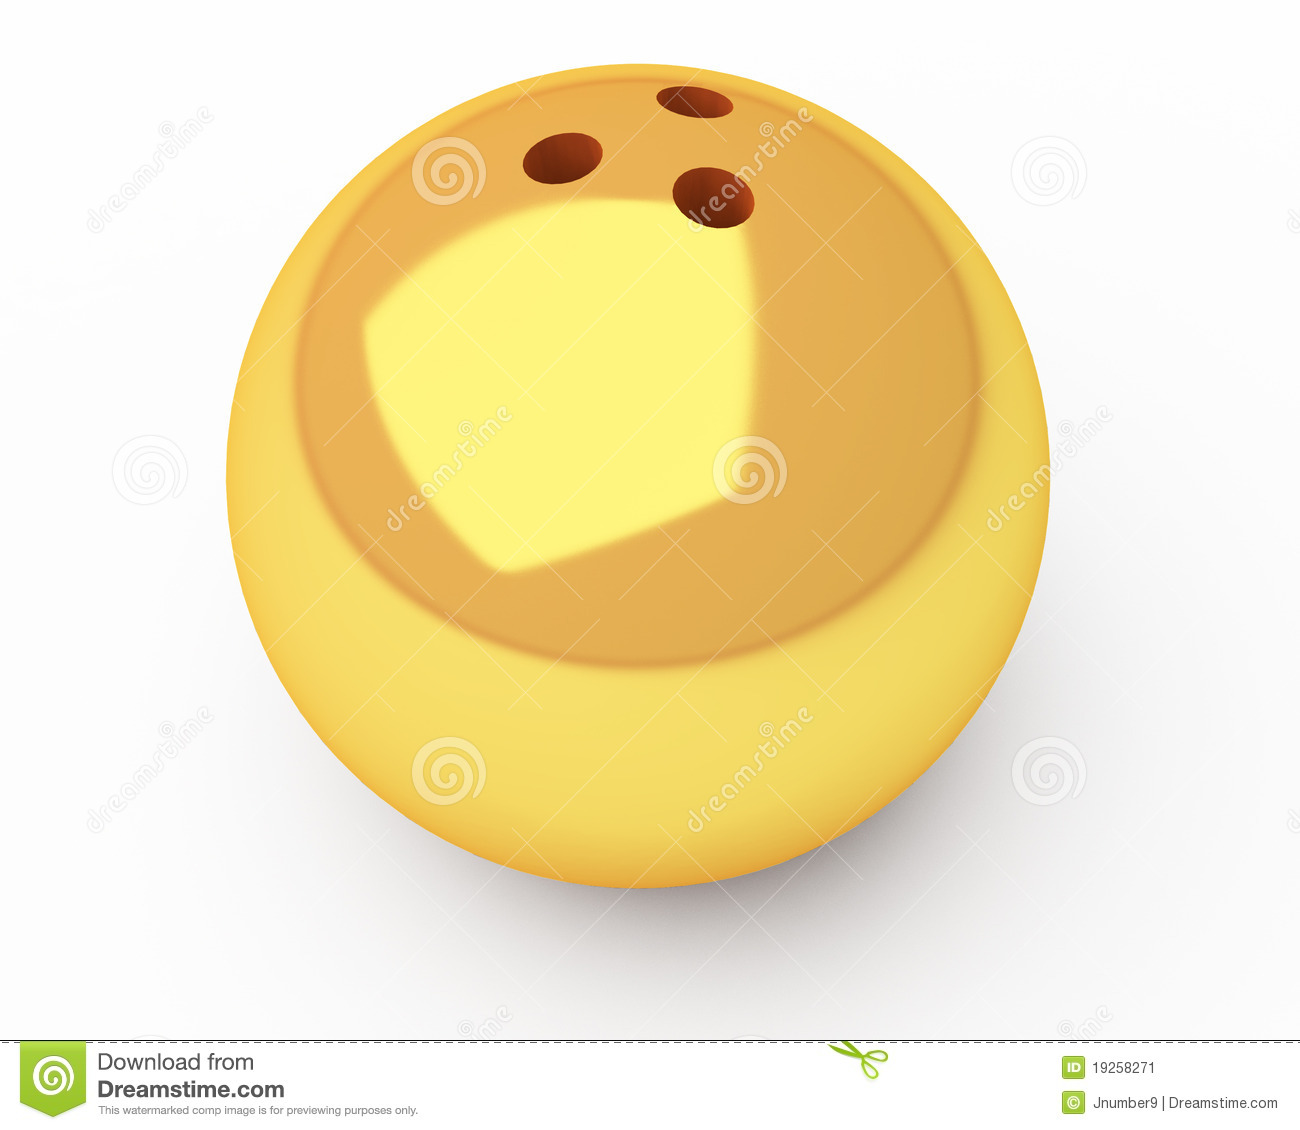 Gold Bowling Ball Stock Image - Image: 19258271